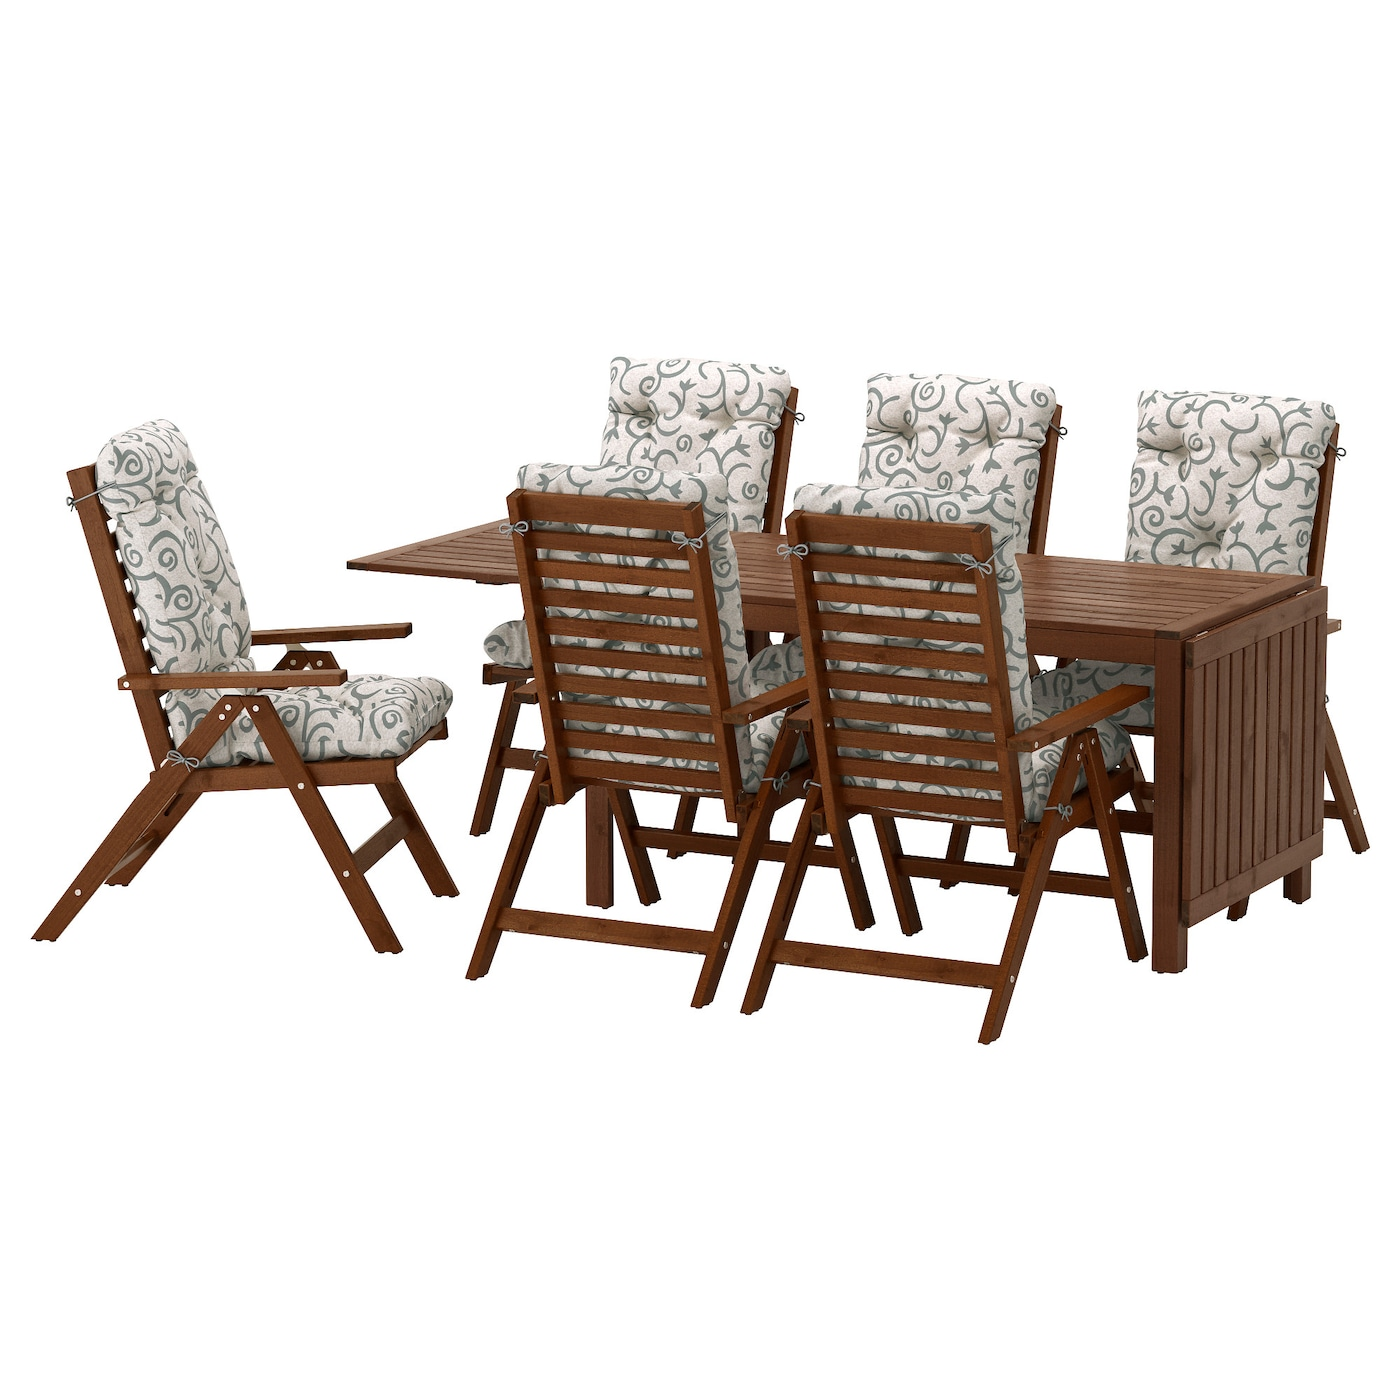 garden table and chair sets india. ikea ÄpplarÖ table+6 reclining chairs, outdoor the chair folds to be easy garden table and sets india